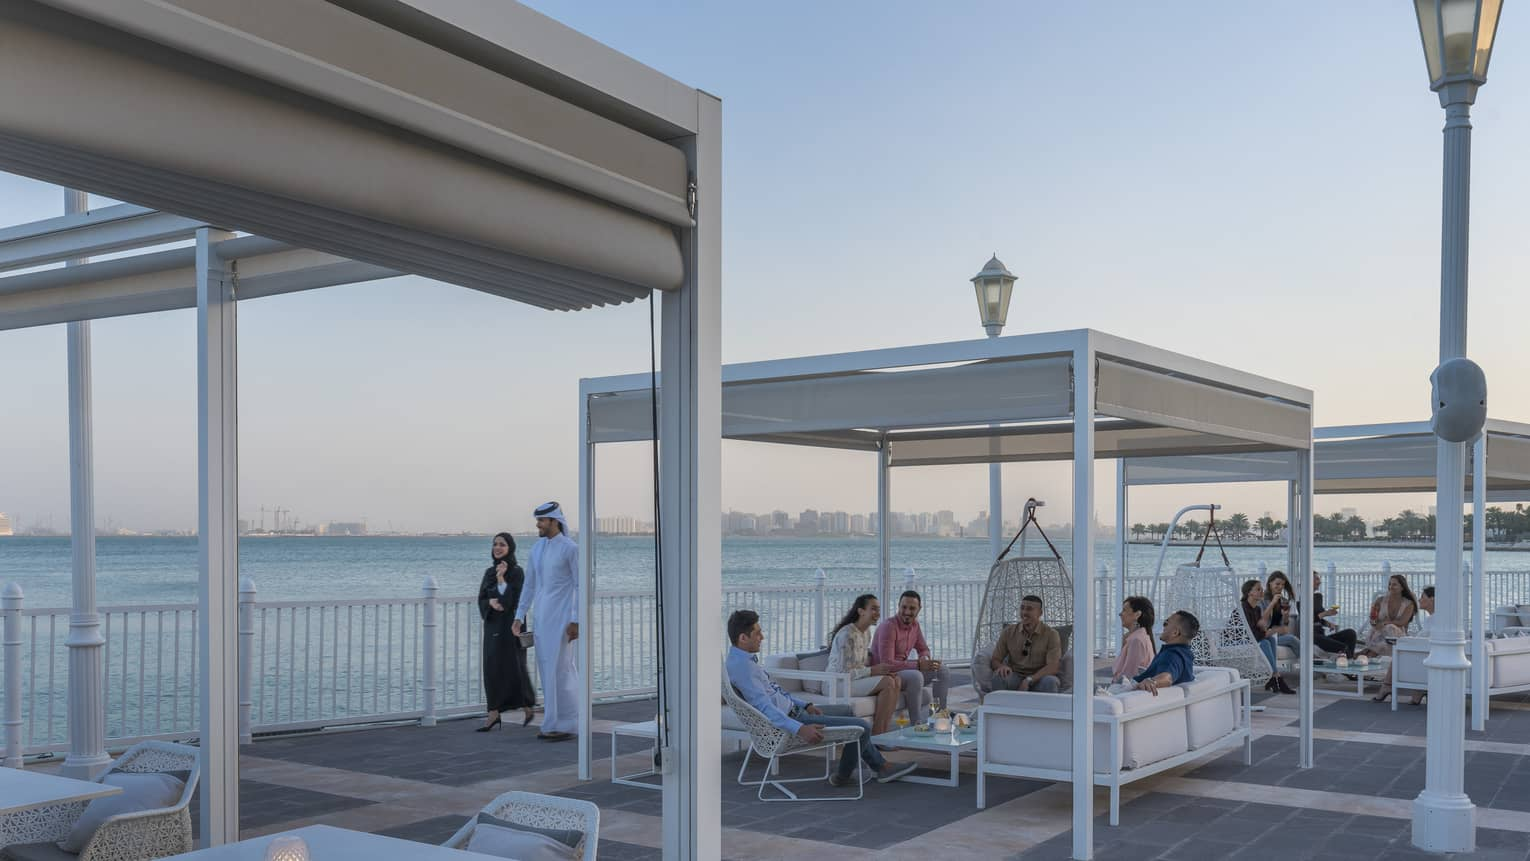 People mingle at outdoor lounge The Pier at Four Seasons Doha, overlooking the sea